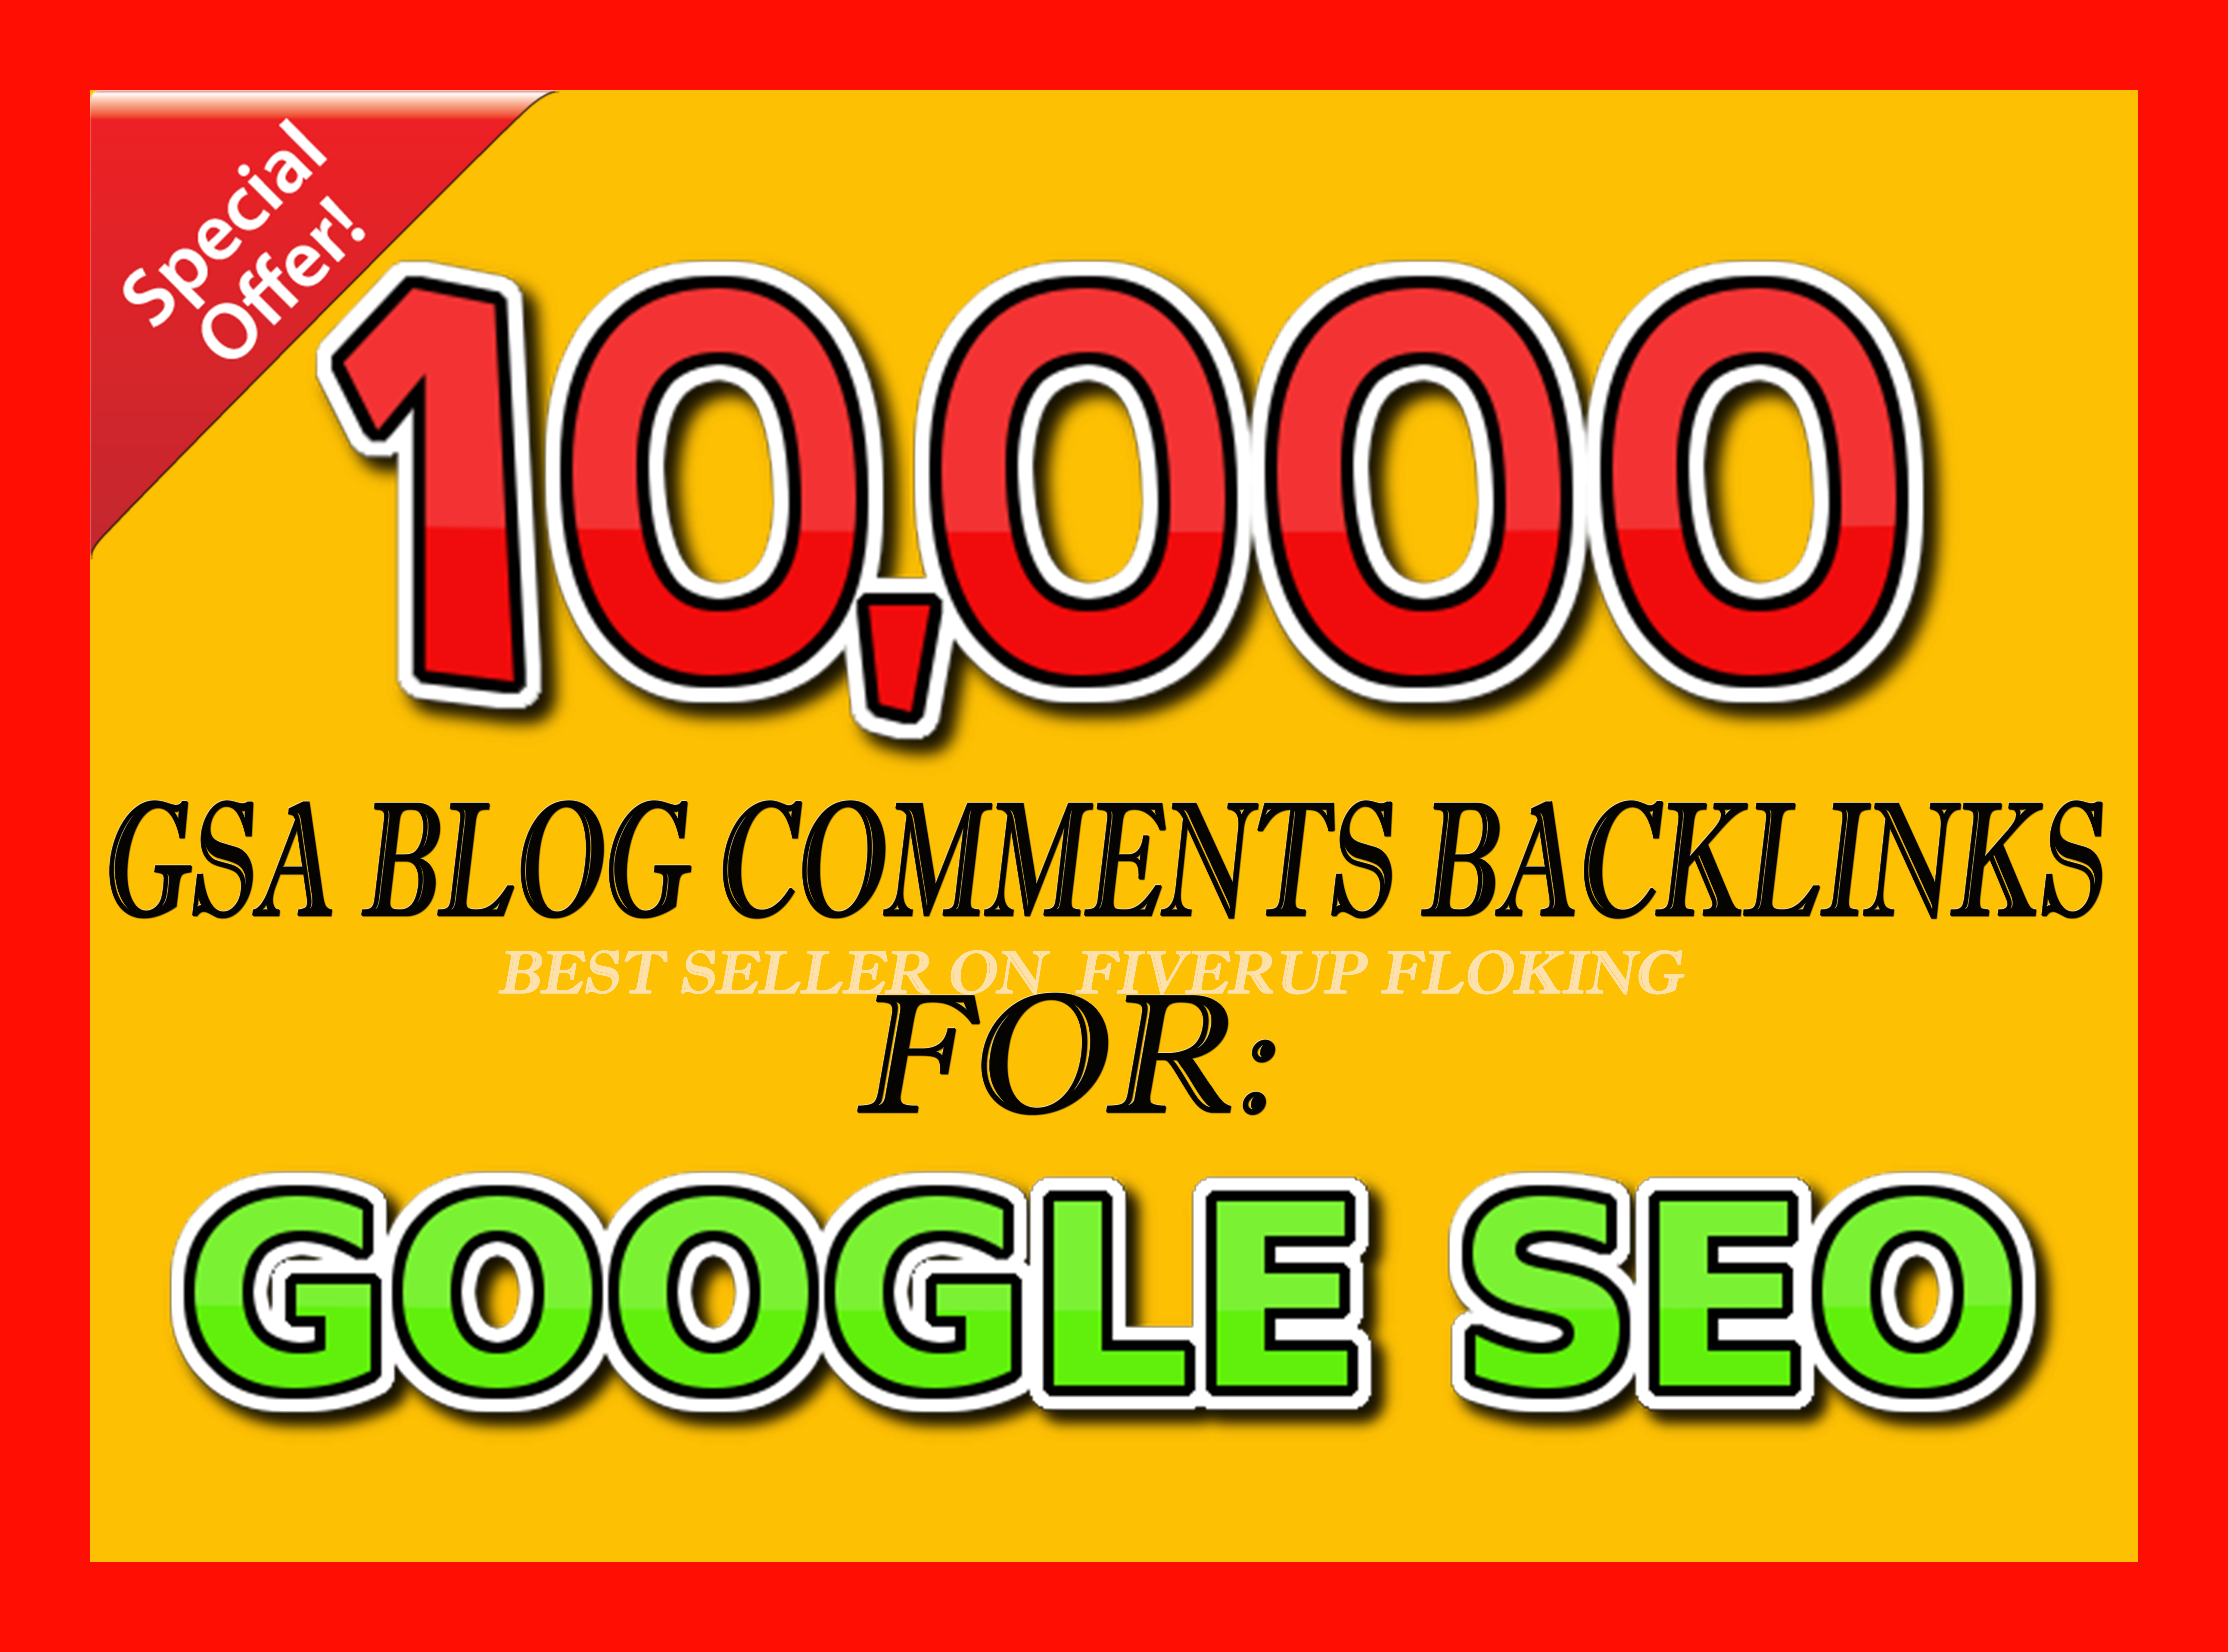 10,000 GSA Blog Comments Backlinks for Google SEO to increase your ranking in search results